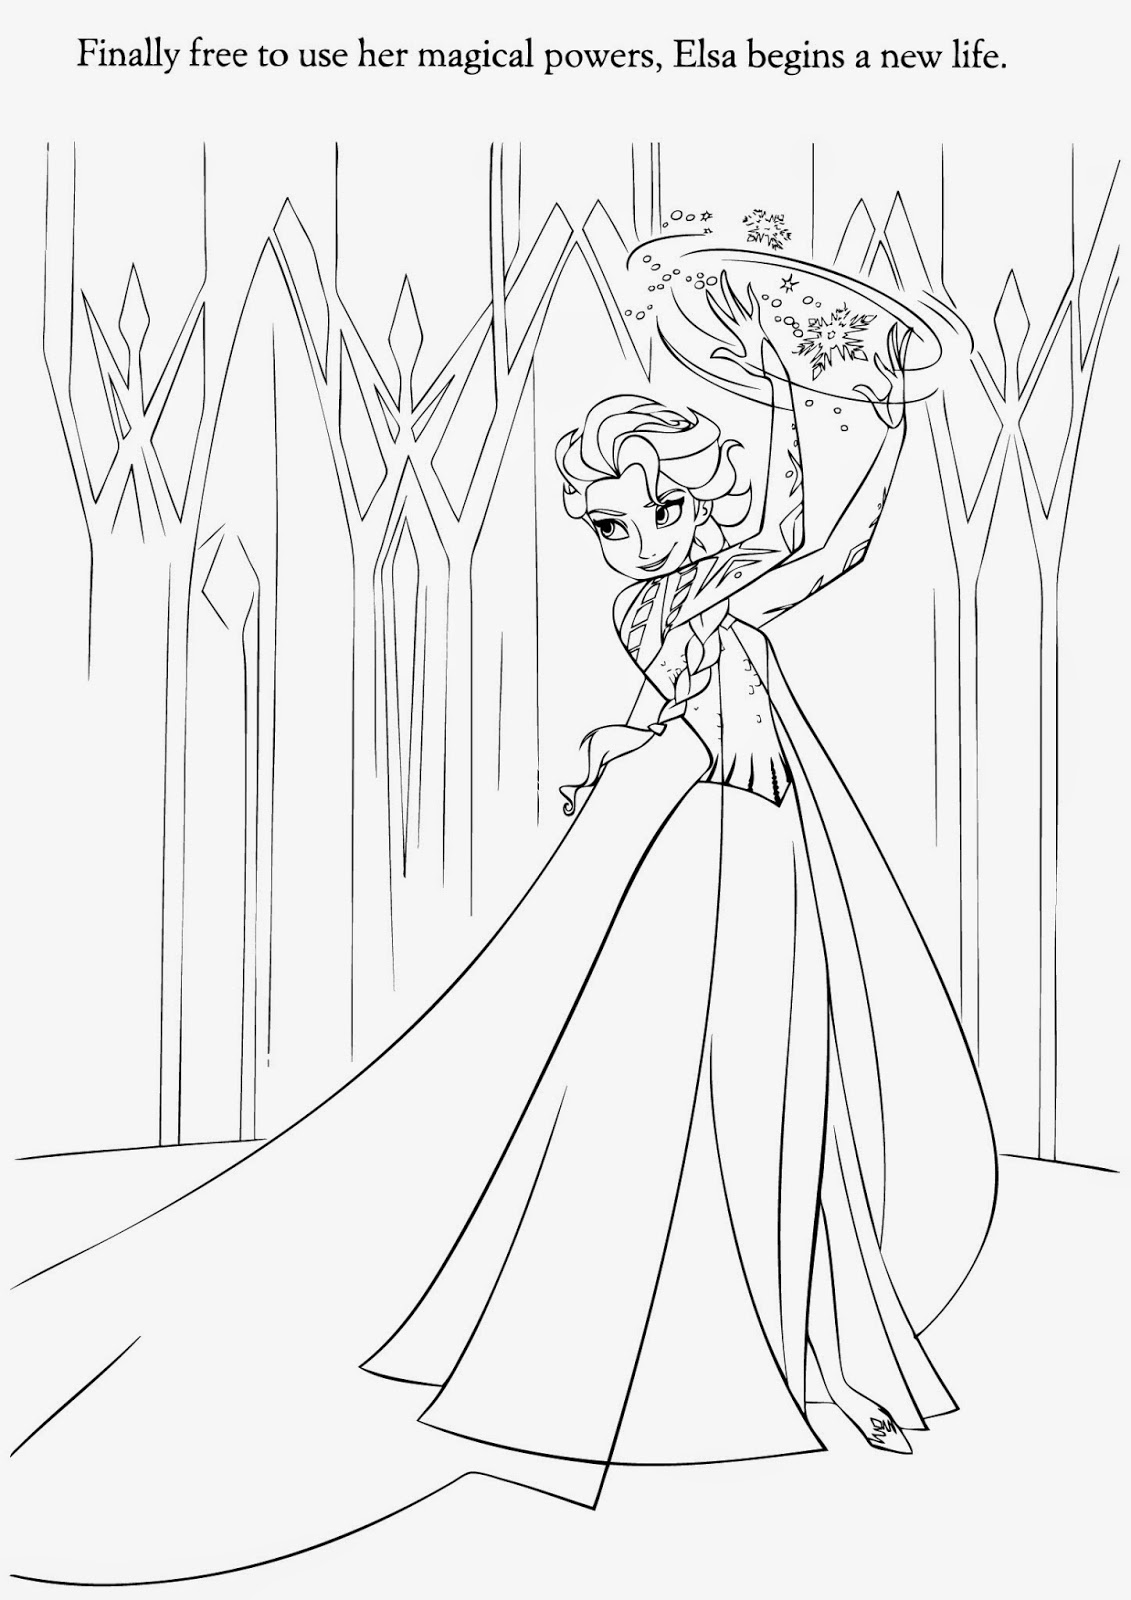 Frozen Coloring Pages On Coloring Book : Disney frozen coloring pages elsa instant knowledge